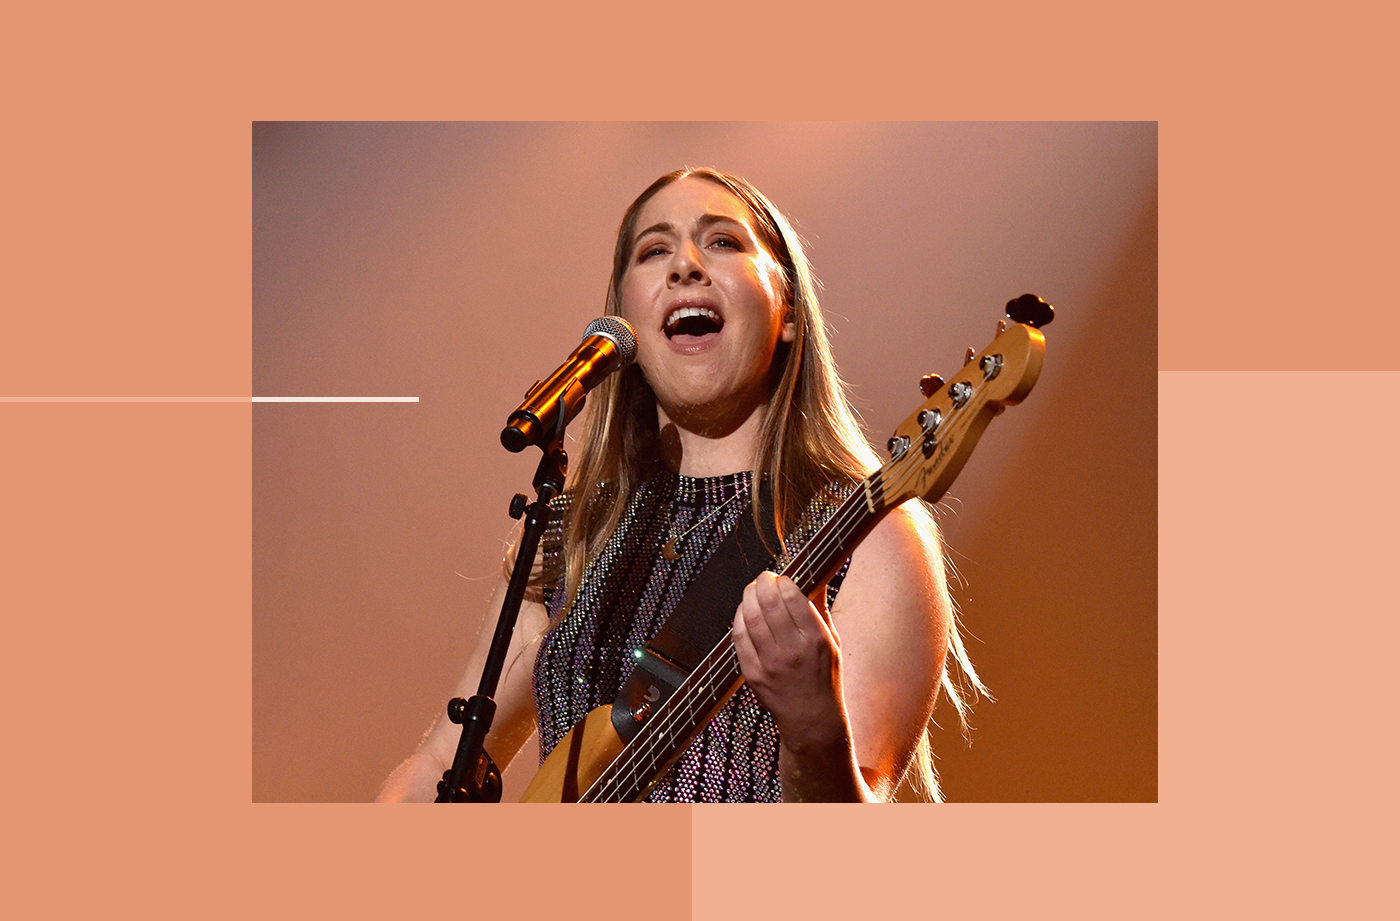 Thumbnail for Este Haim Says She Was Told Her Type 1 Diabetes Would Make a Music Career Impossible